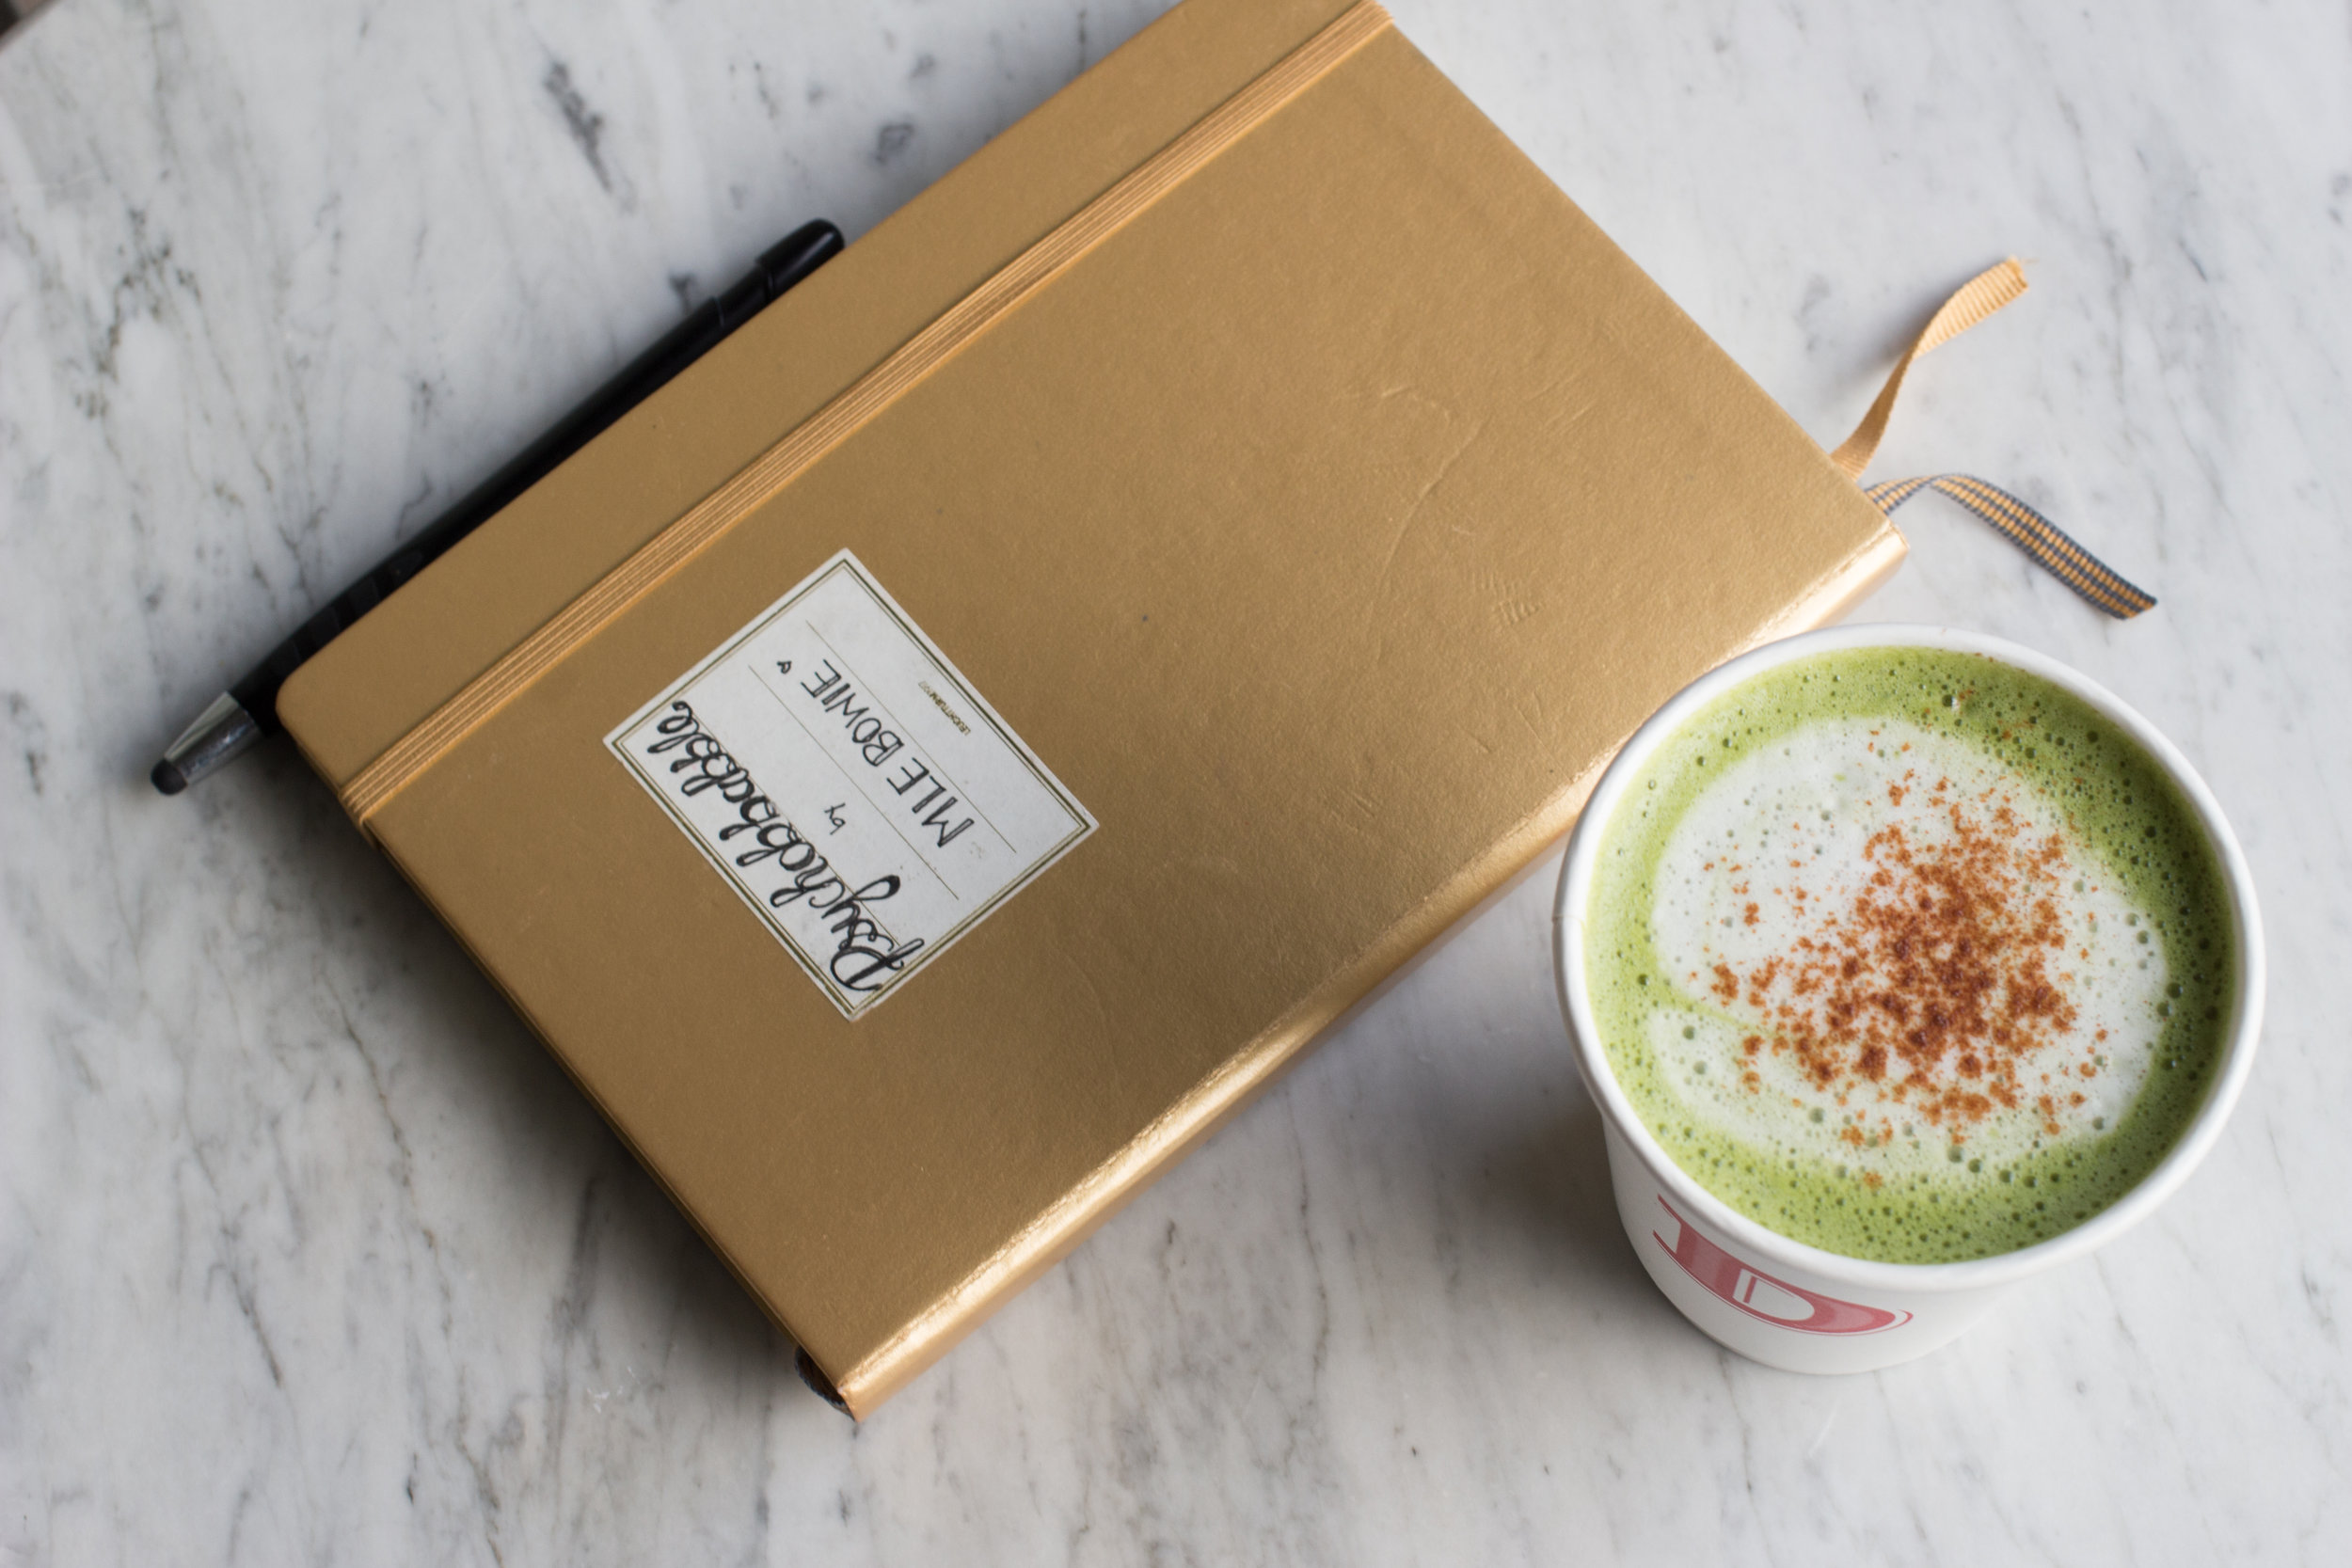 DineenCafe_notebook_matcha-2.jpg